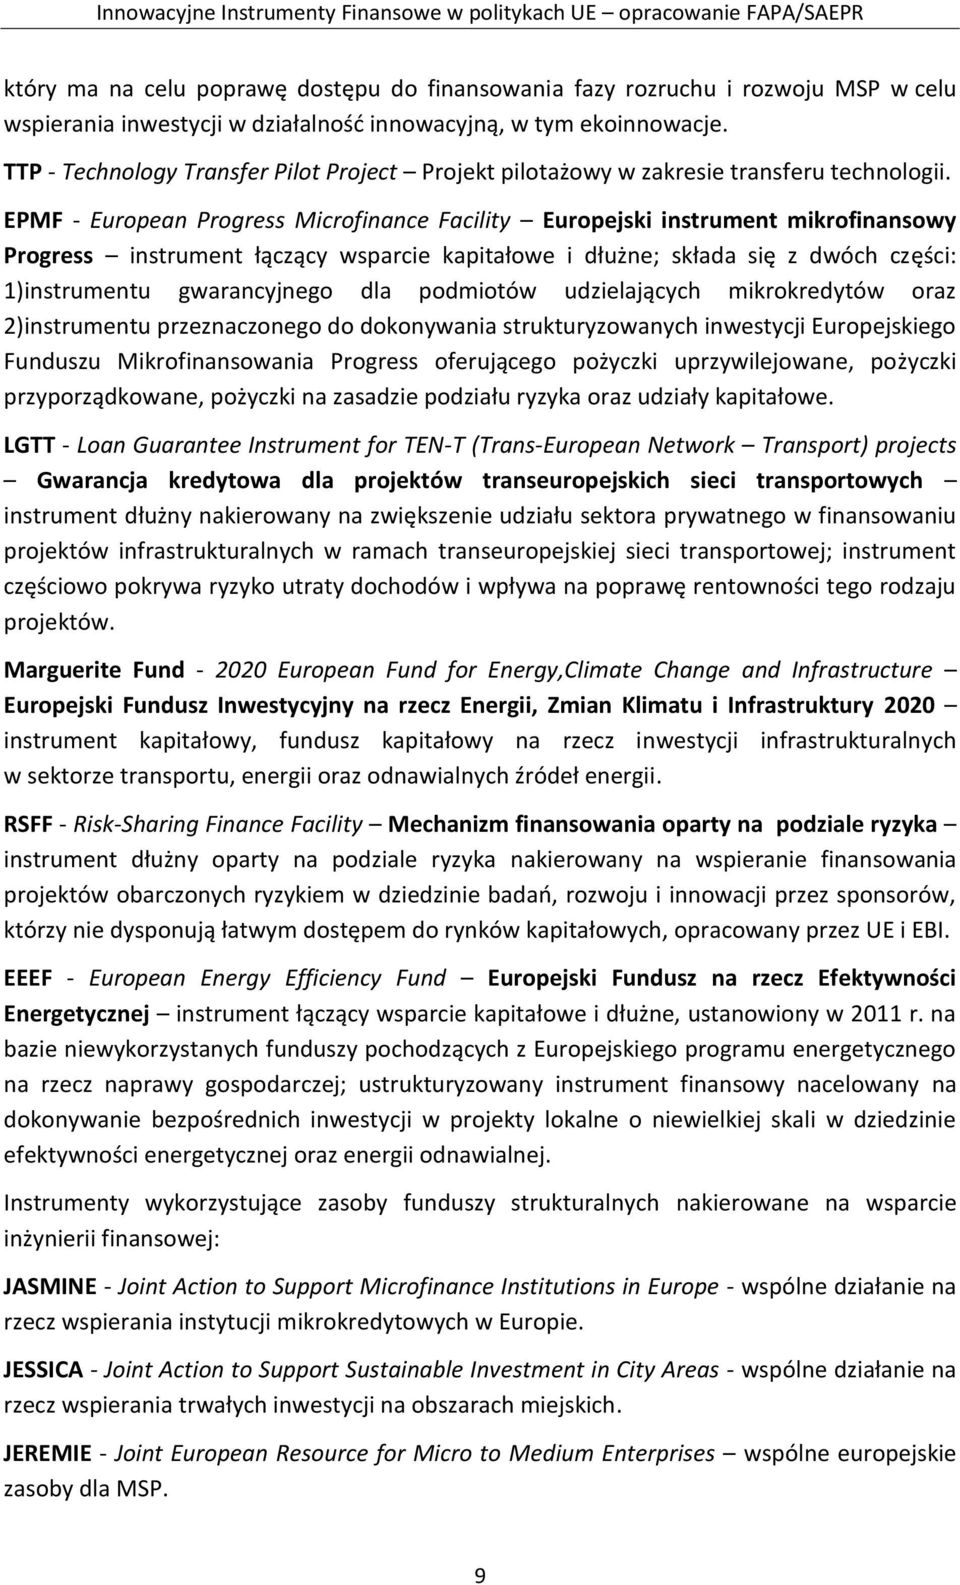 EPMF - European Progress Microfinance Facility Europejski instrument mikrofinansowy Progress instrument łączący wsparcie kapitałowe i dłużne; składa się z dwóch części: 1)instrumentu gwarancyjnego